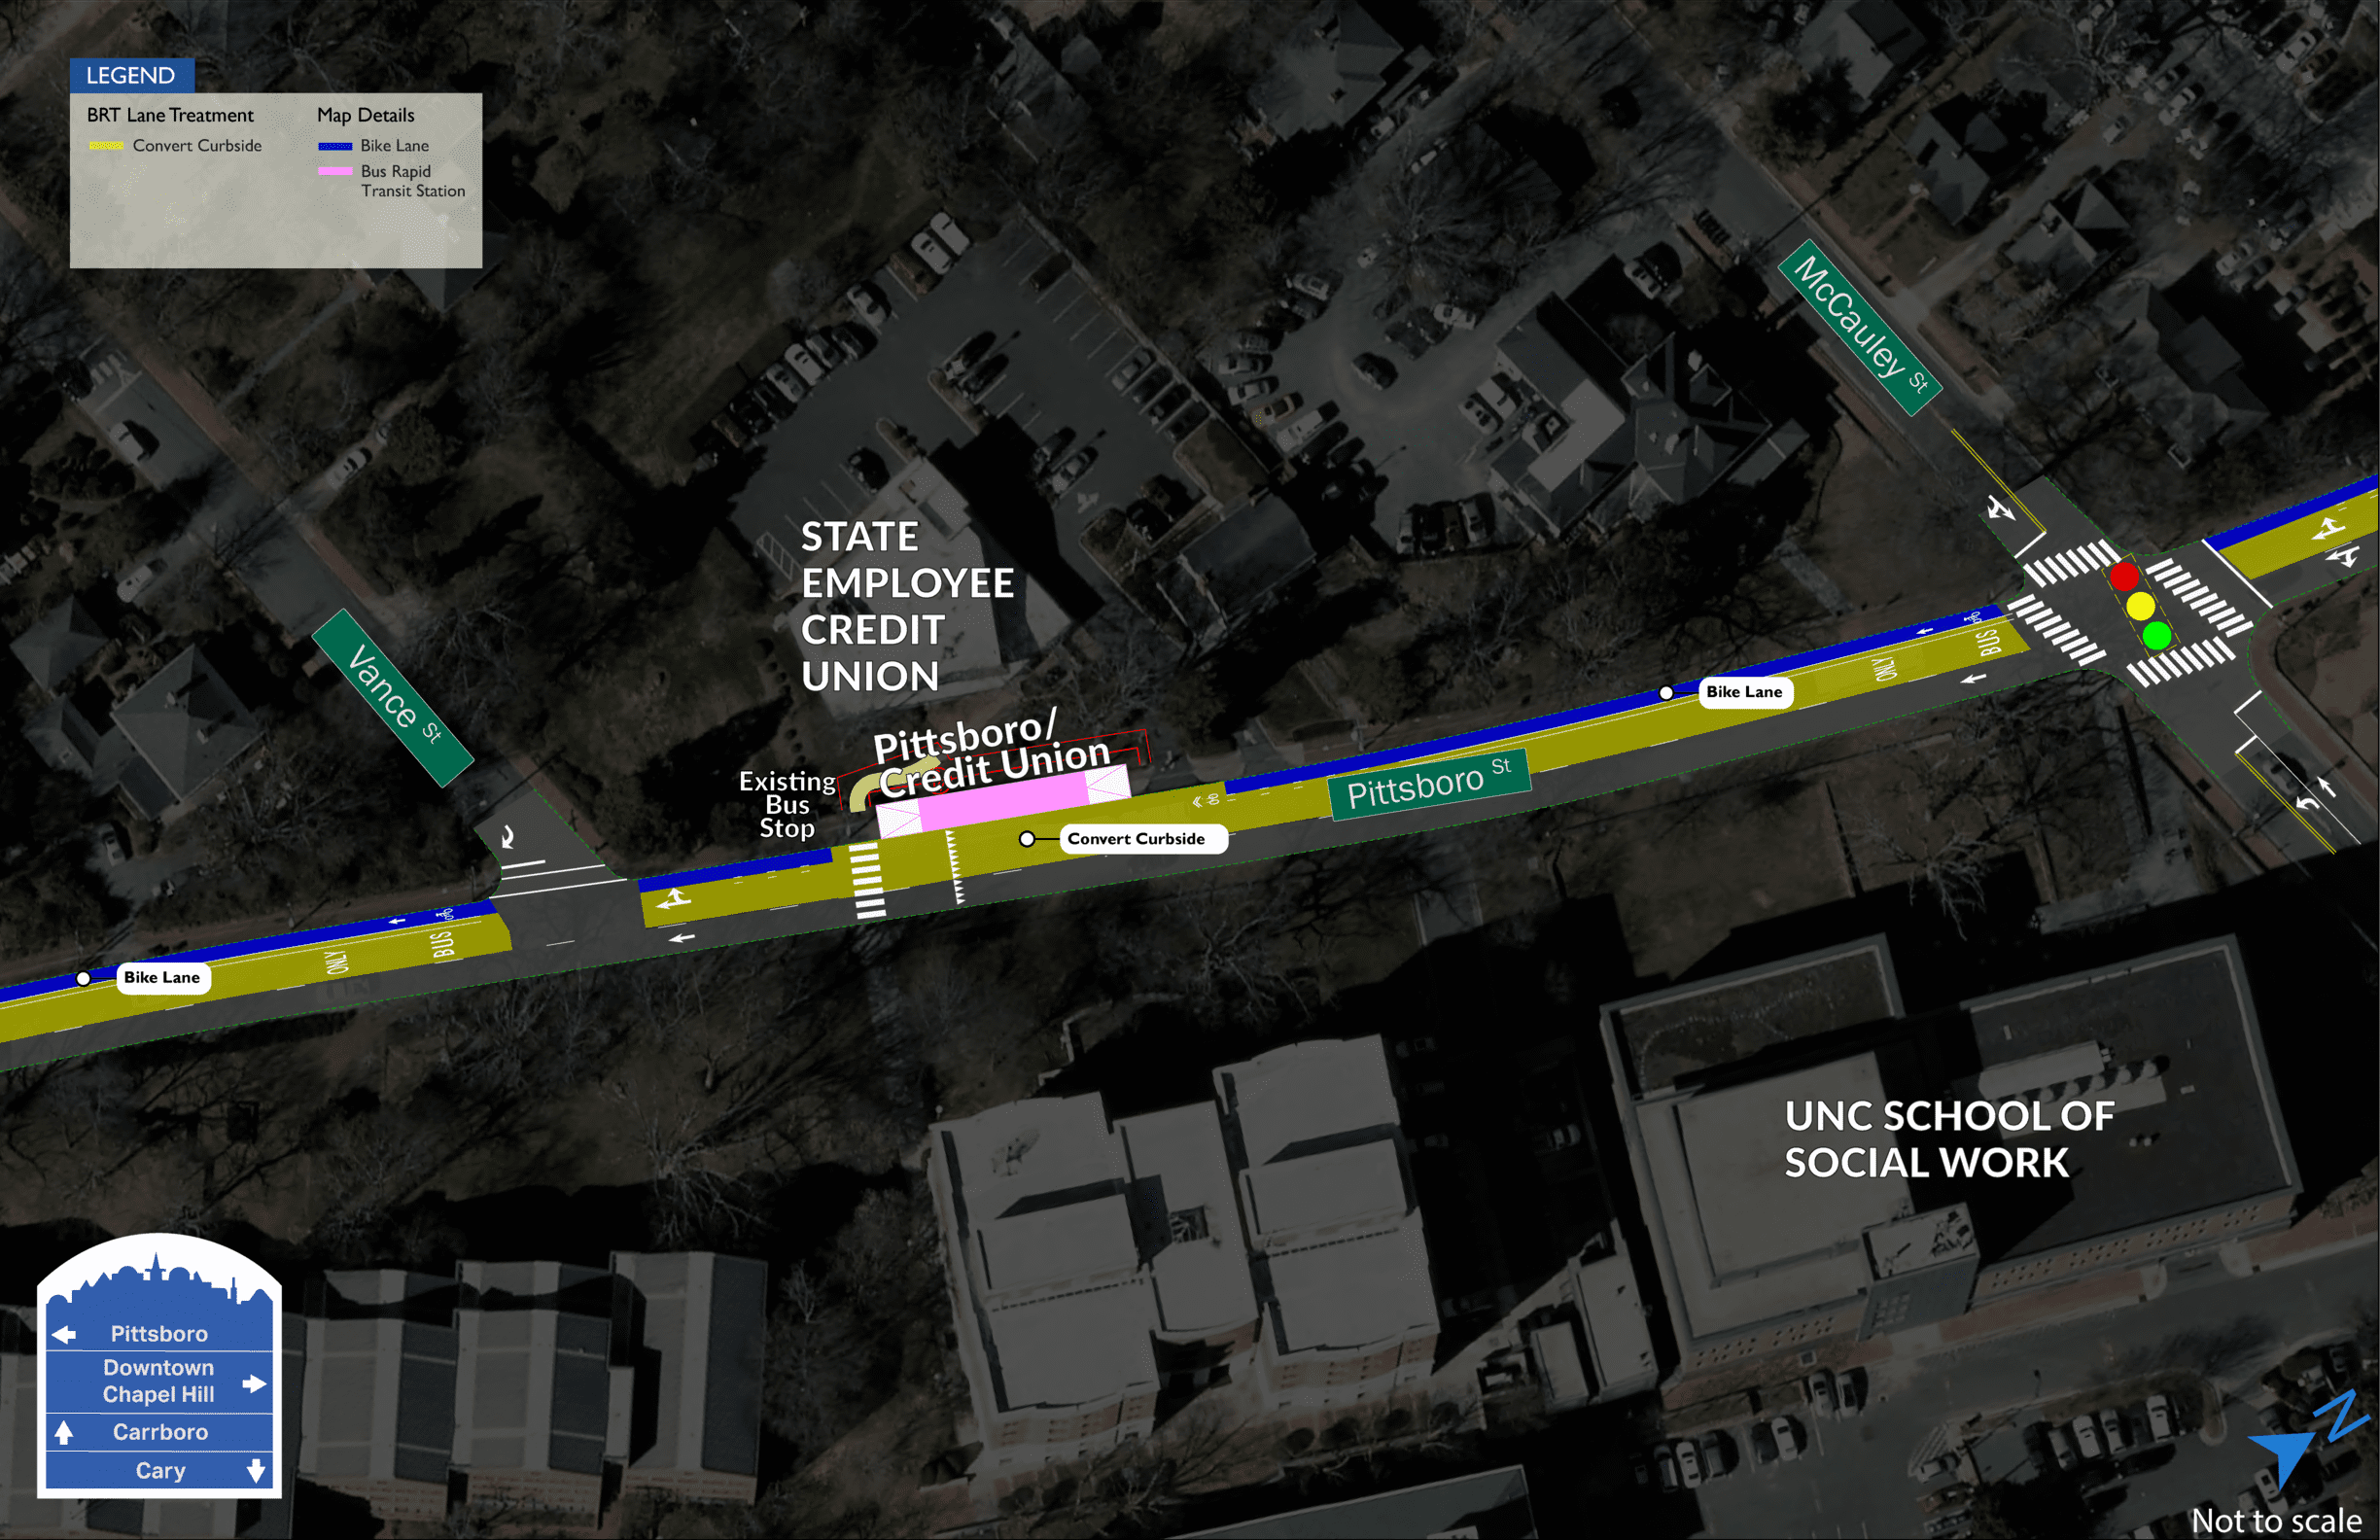 Pittsboro/Credit Union and Carrington BRT map showing one station in front of the State Employee Credit Union building on Pittsboro Street. The building is located between Vance Street and McCauley Street.